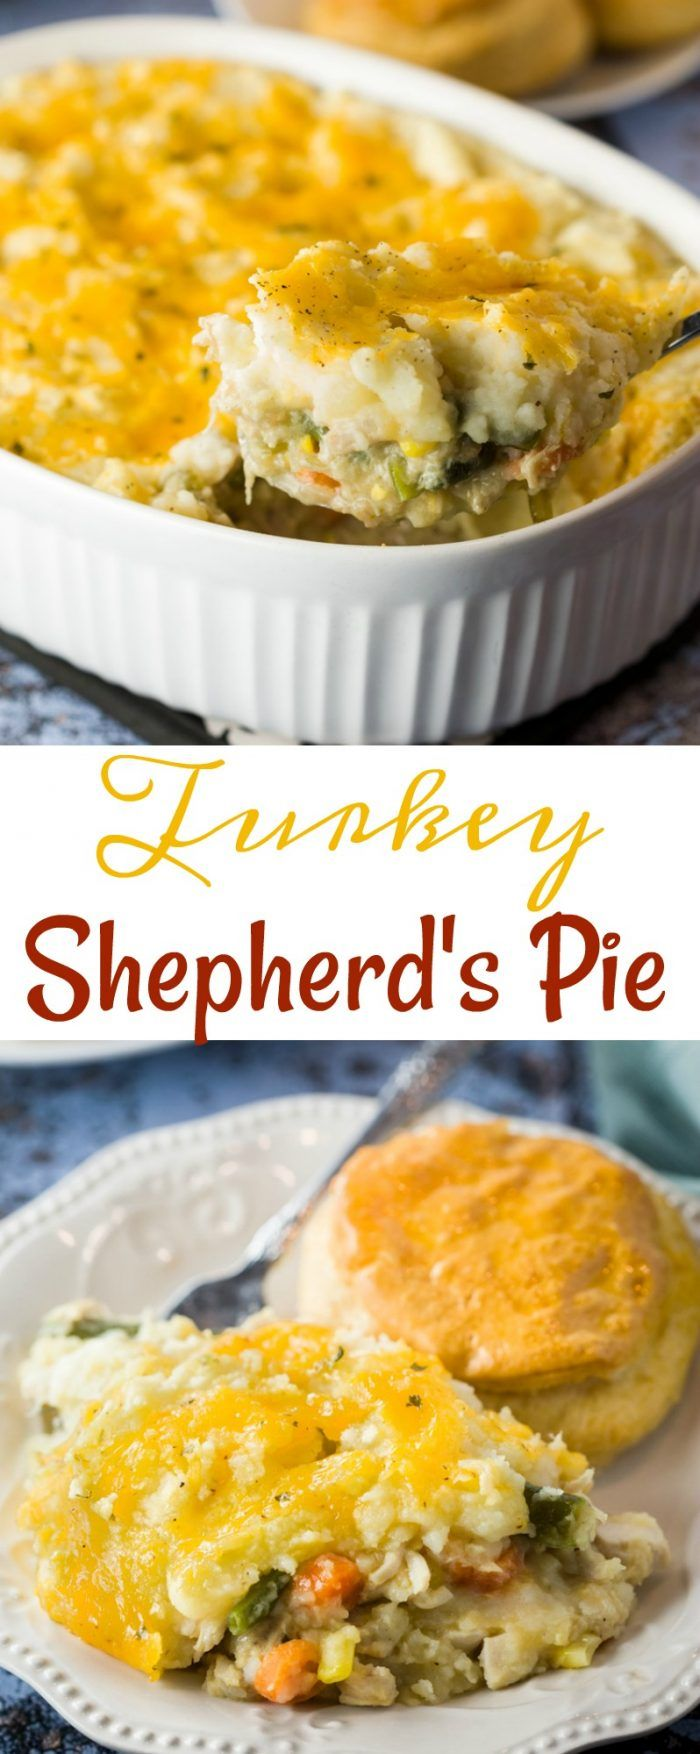 Turkey Shepherd's Pie #shepardspie